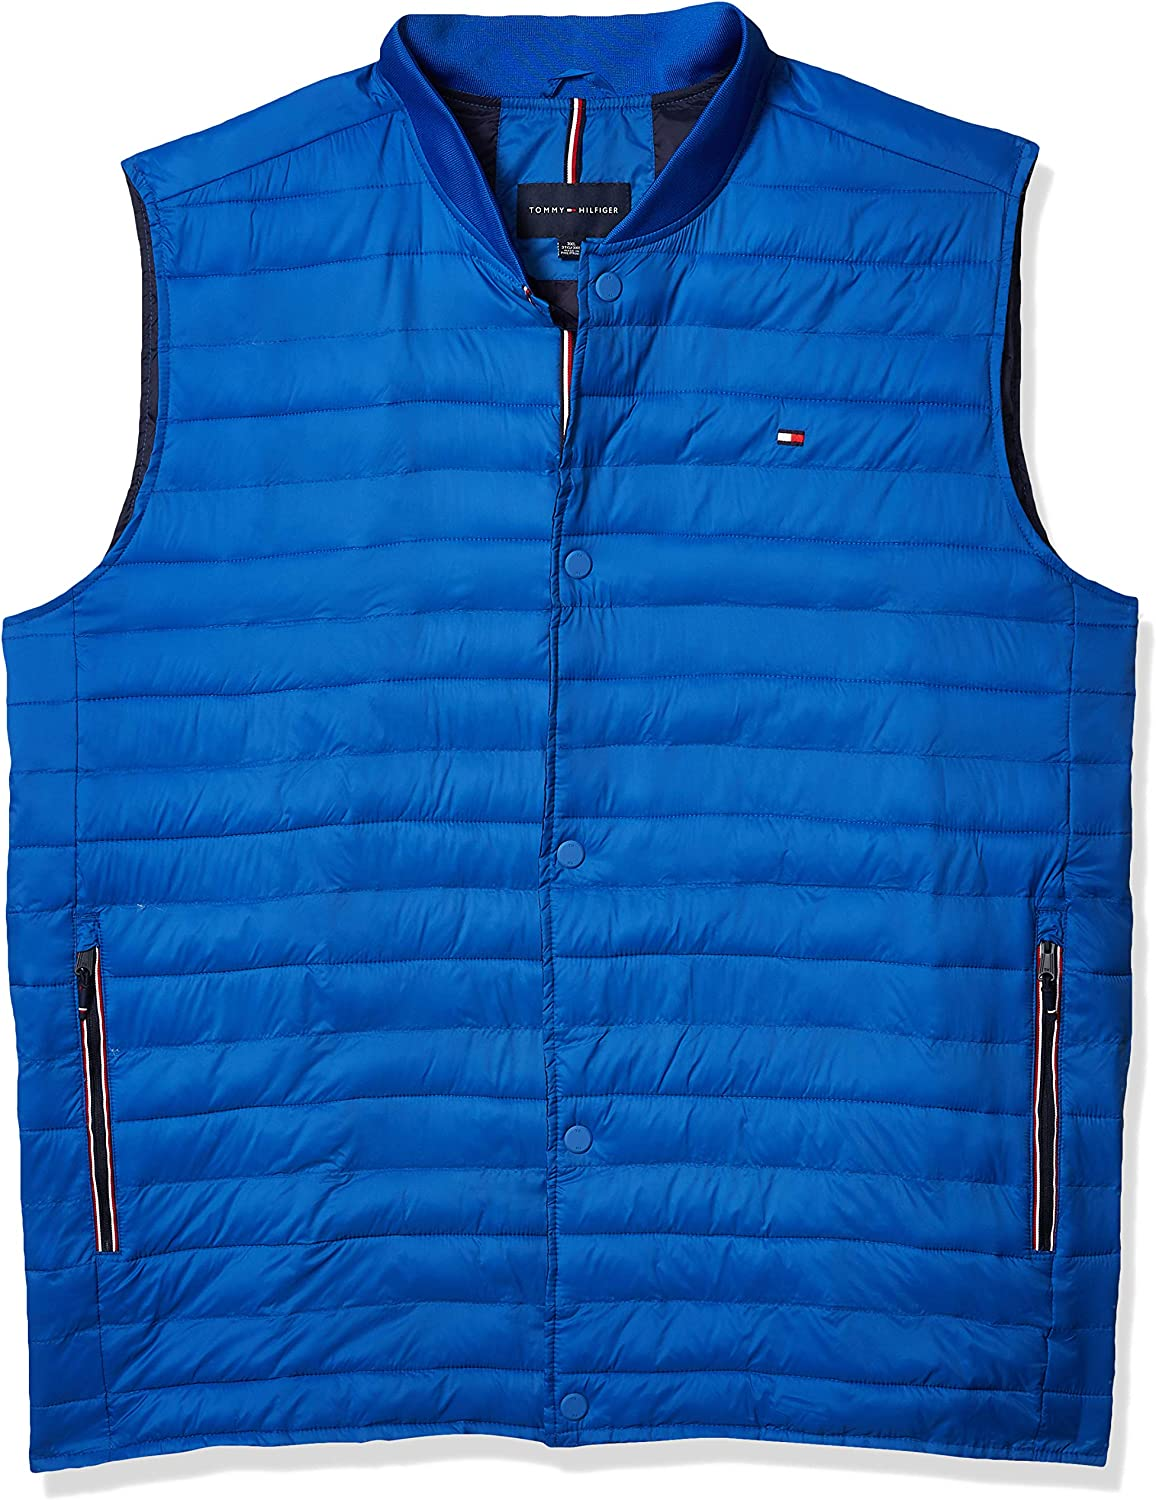 Tommy Hilfiger mens Tall Men's Insulator Quilted Vest